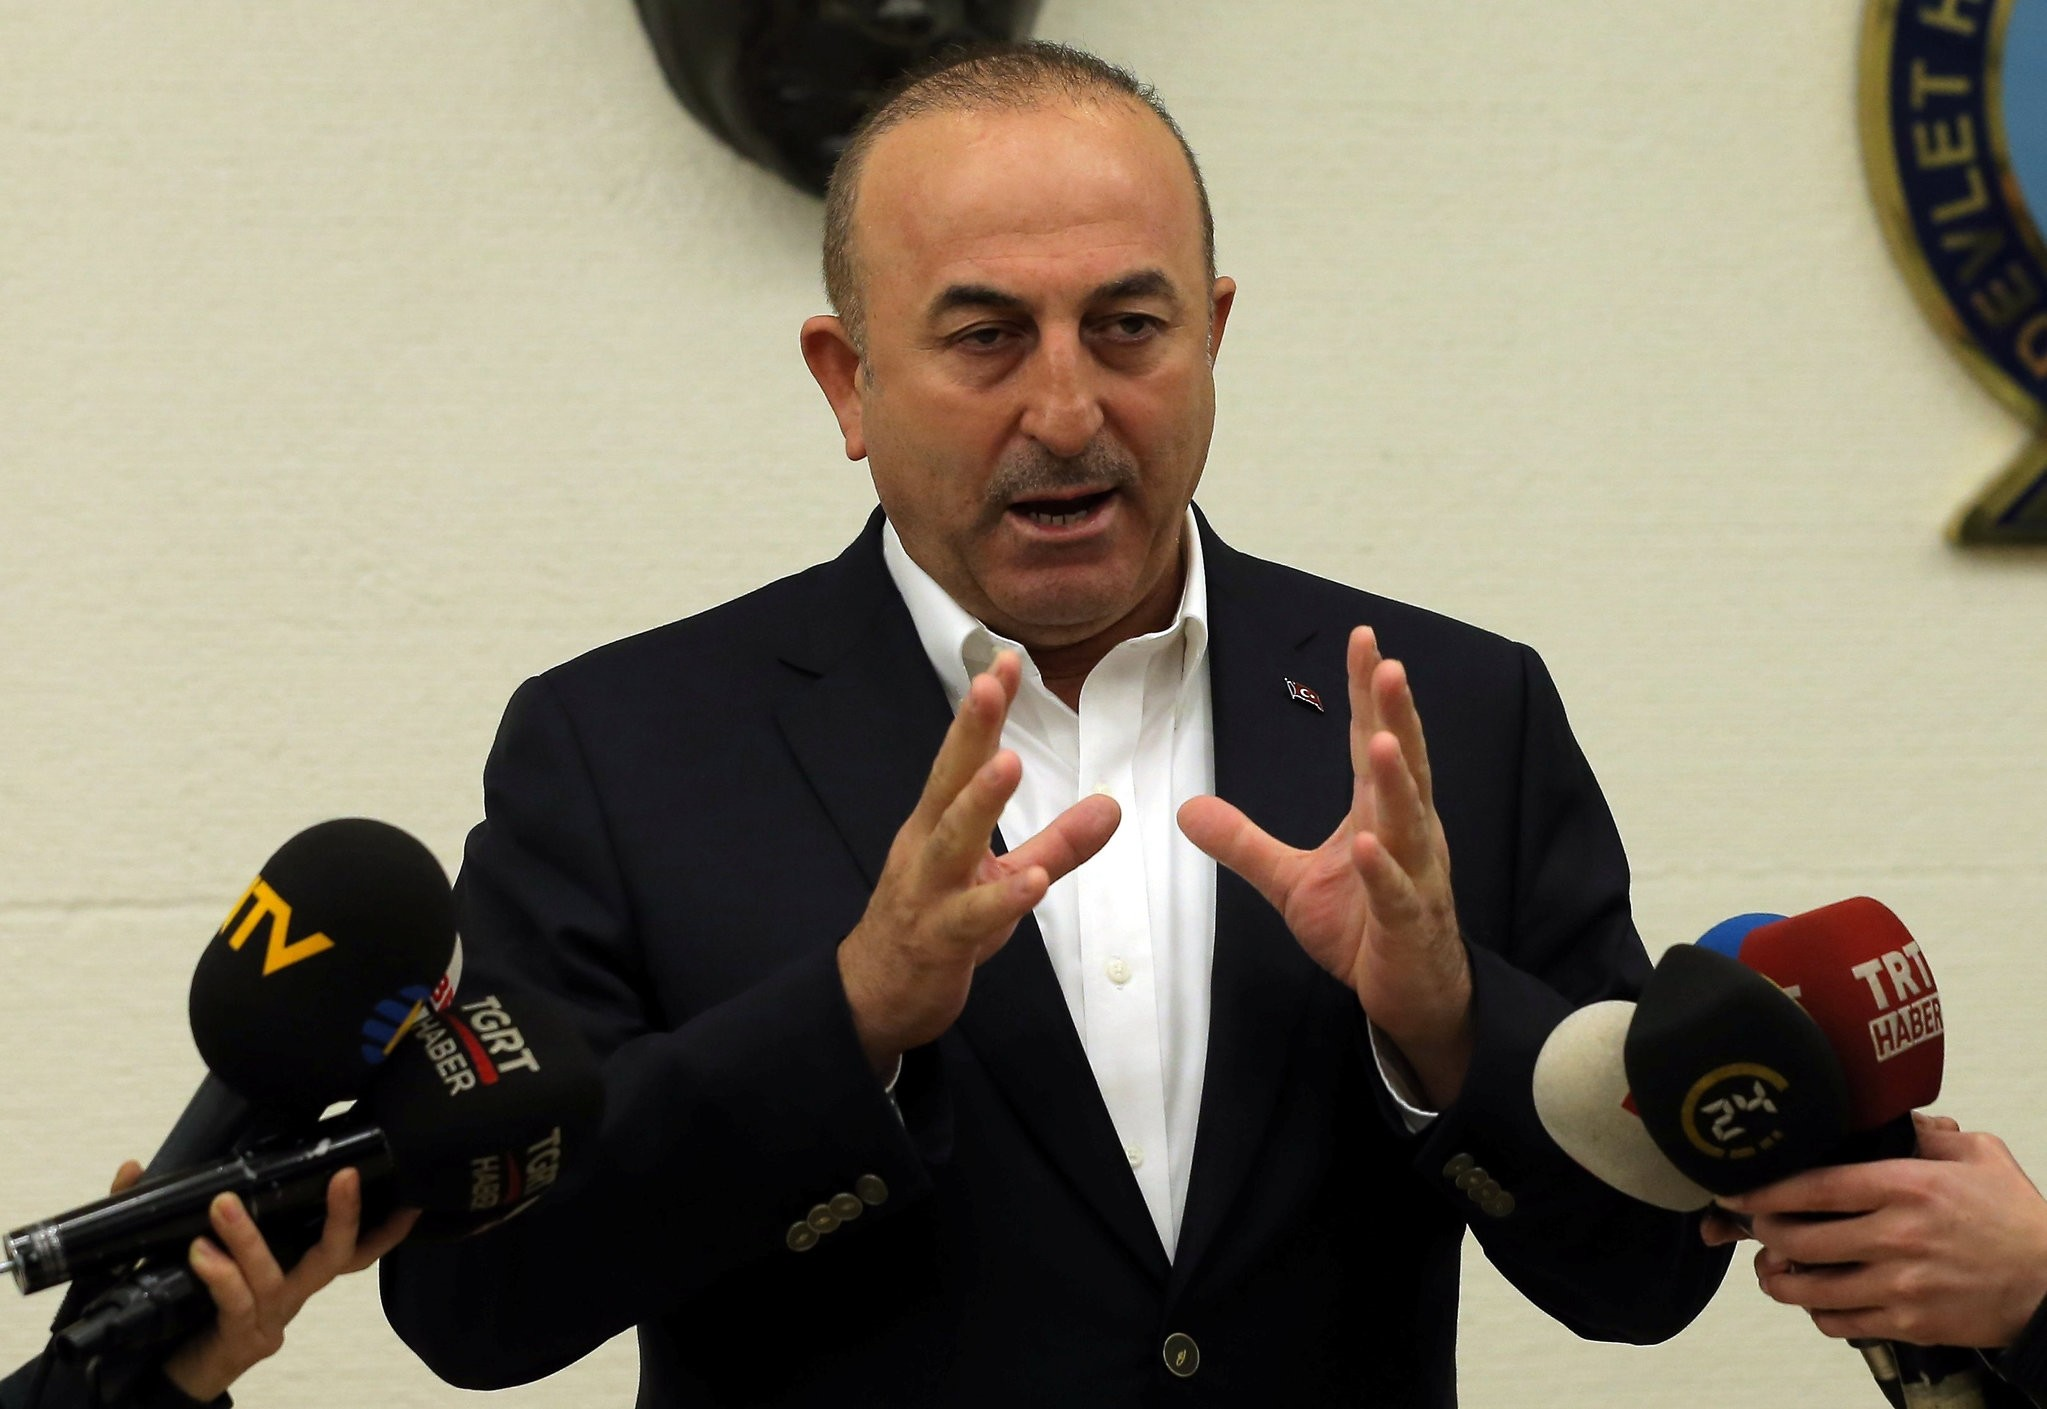 Foreign Minister Mevlut Cavusoglu speaks during a news conference at Ataturk International airport in Istanbul, Turkey, March 11, 2017. (REUTERS Photo)